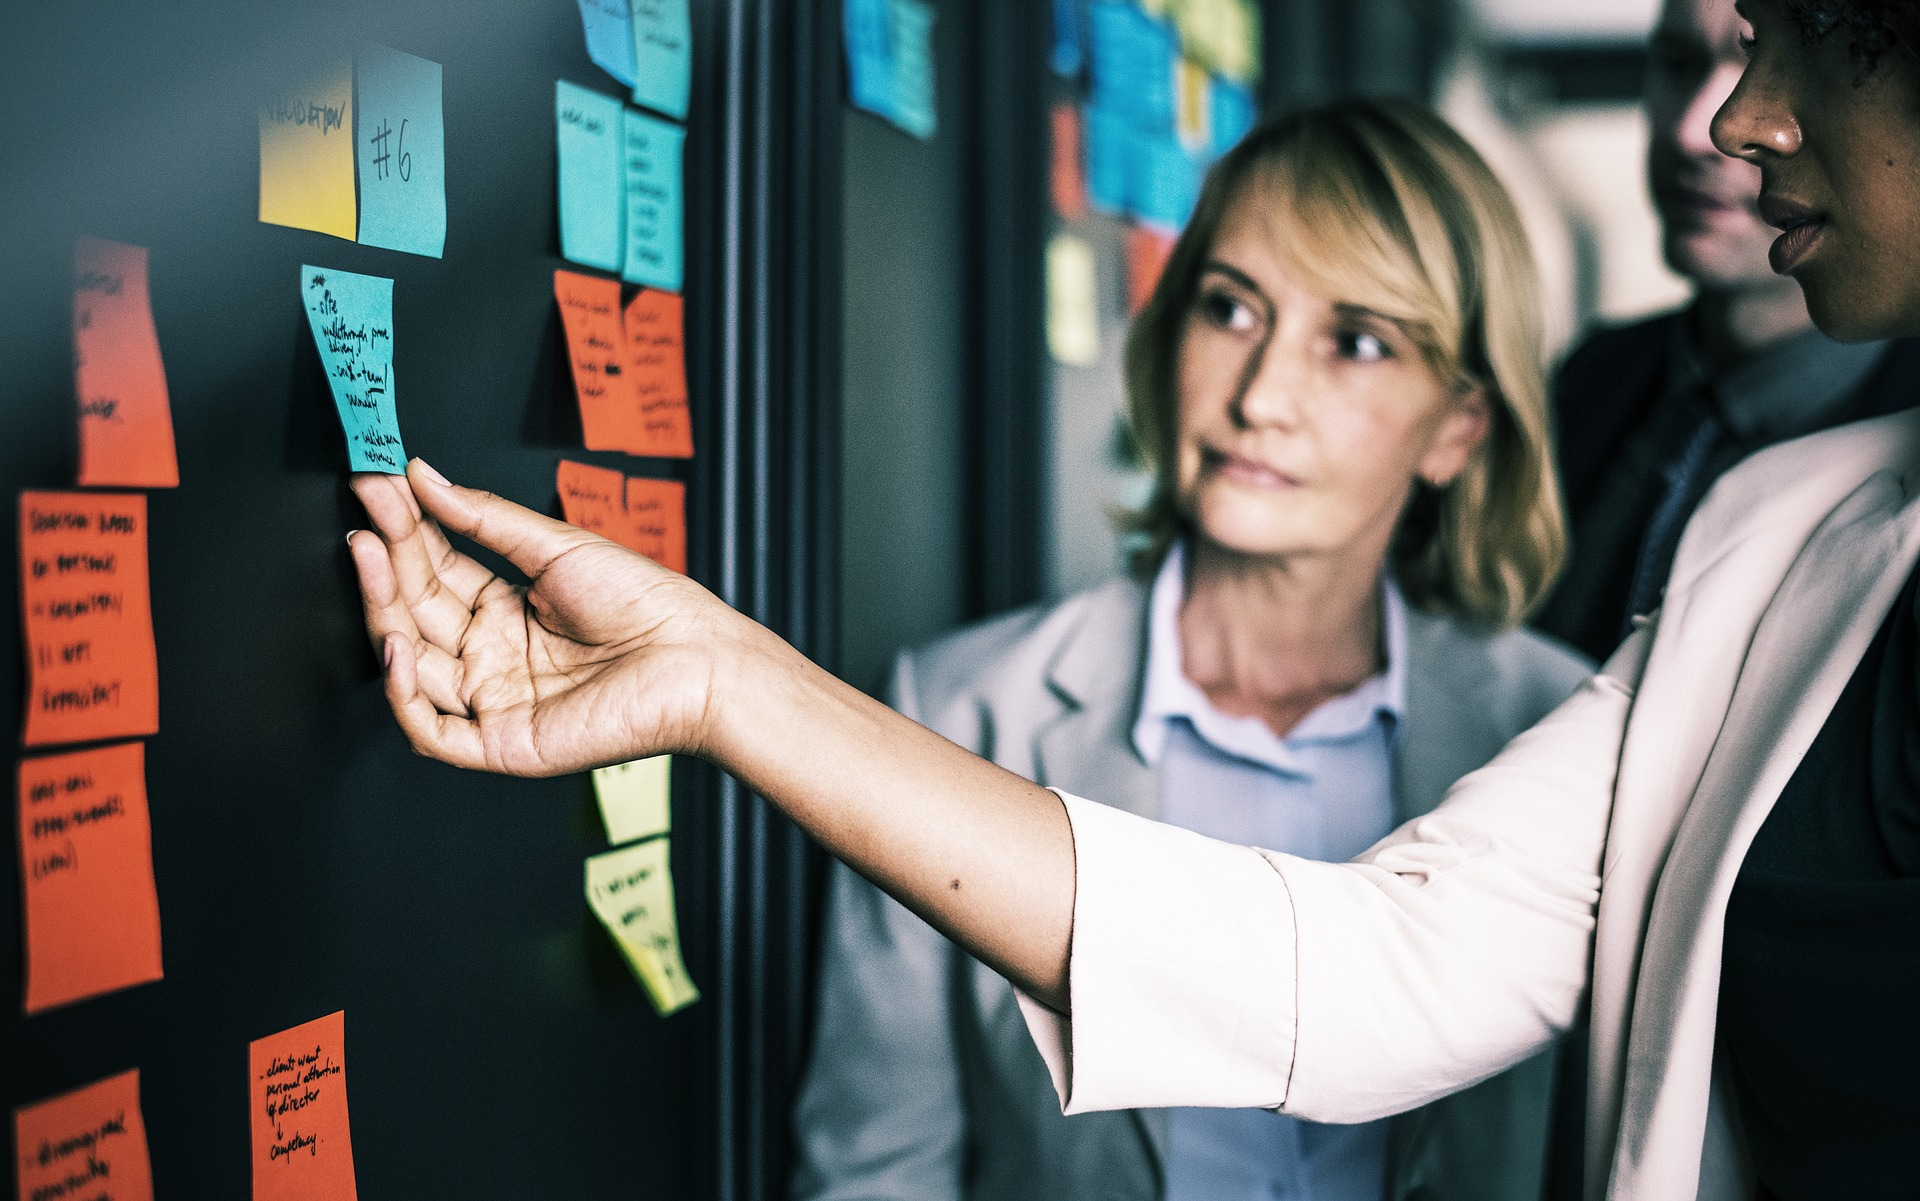 Two Women looking at board with sticky notes